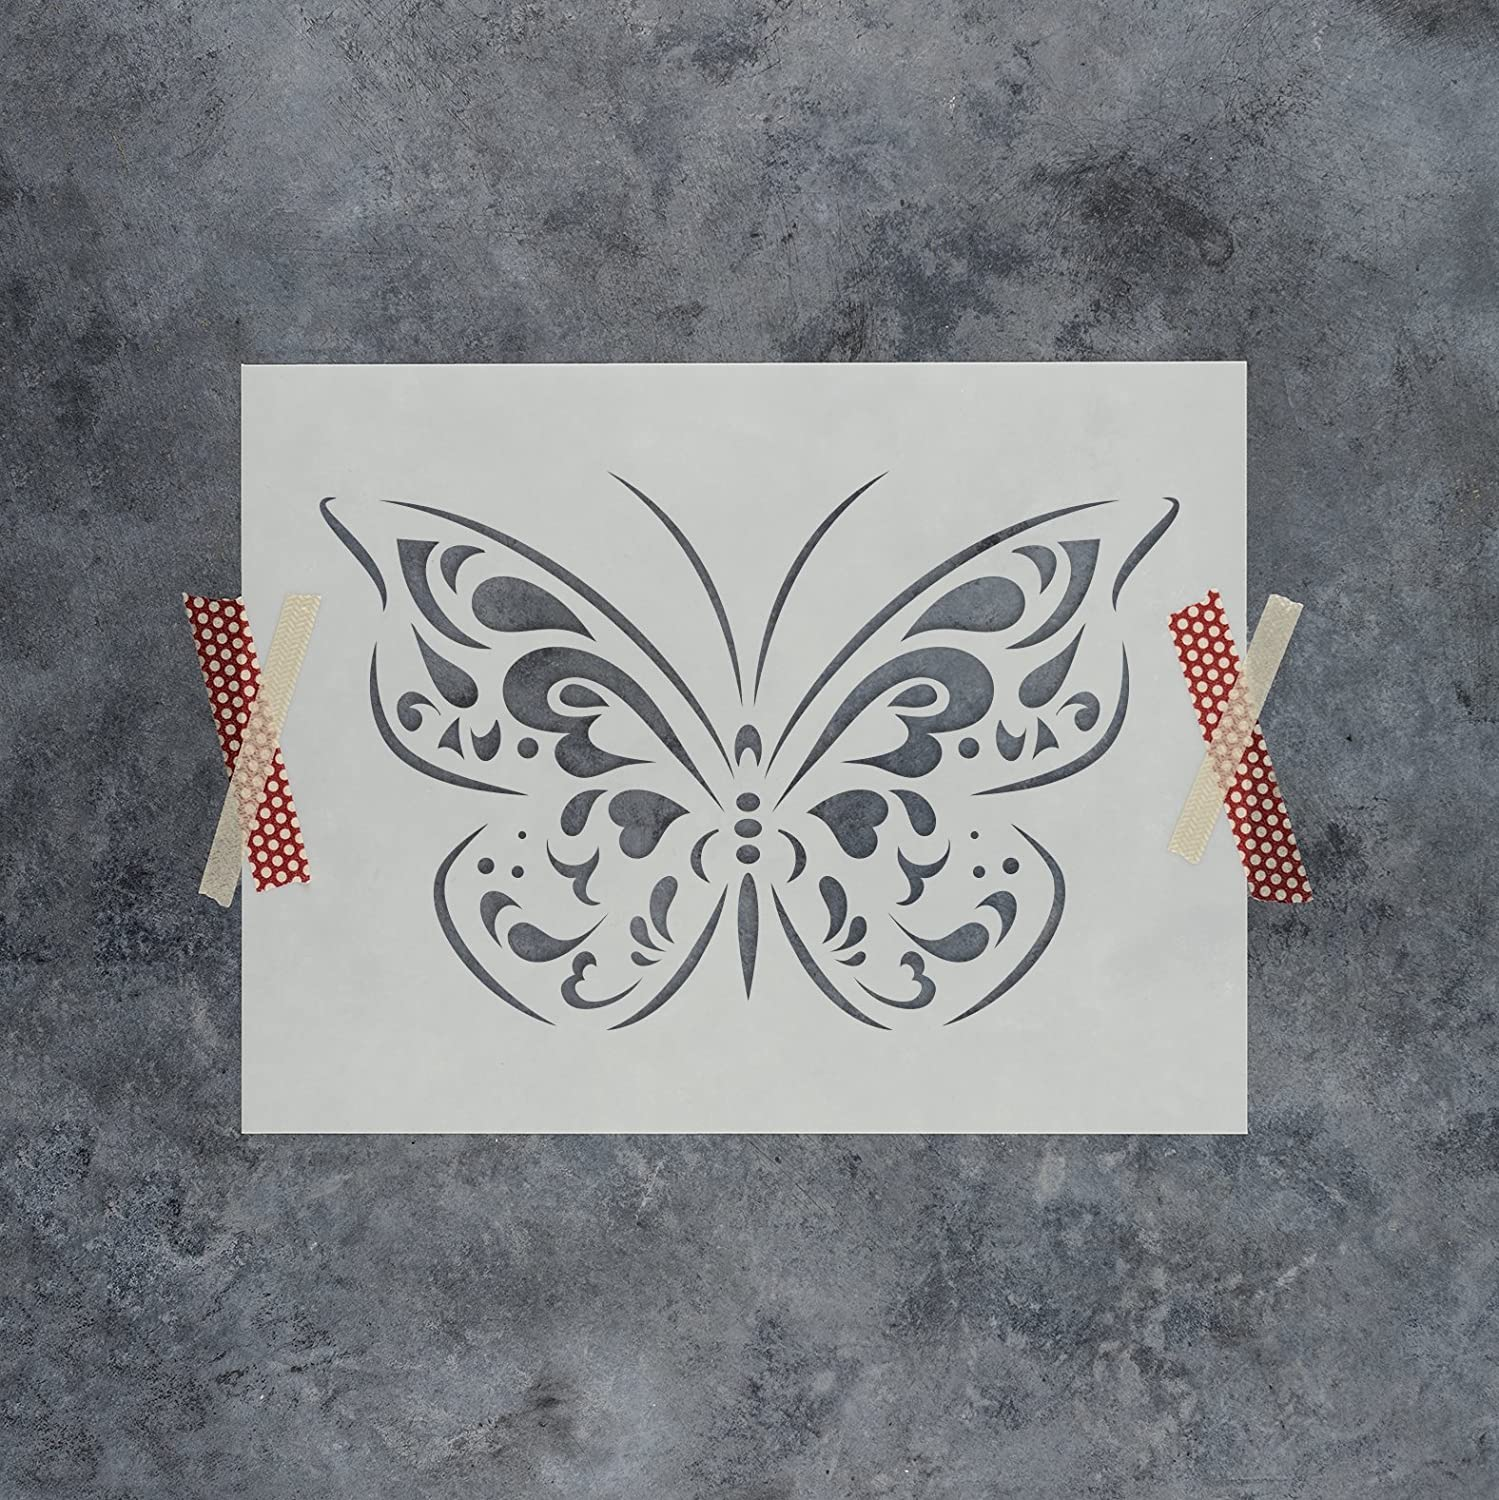 Amazon.com: Butterfly Stencil Template - Reusable Stencil with ...